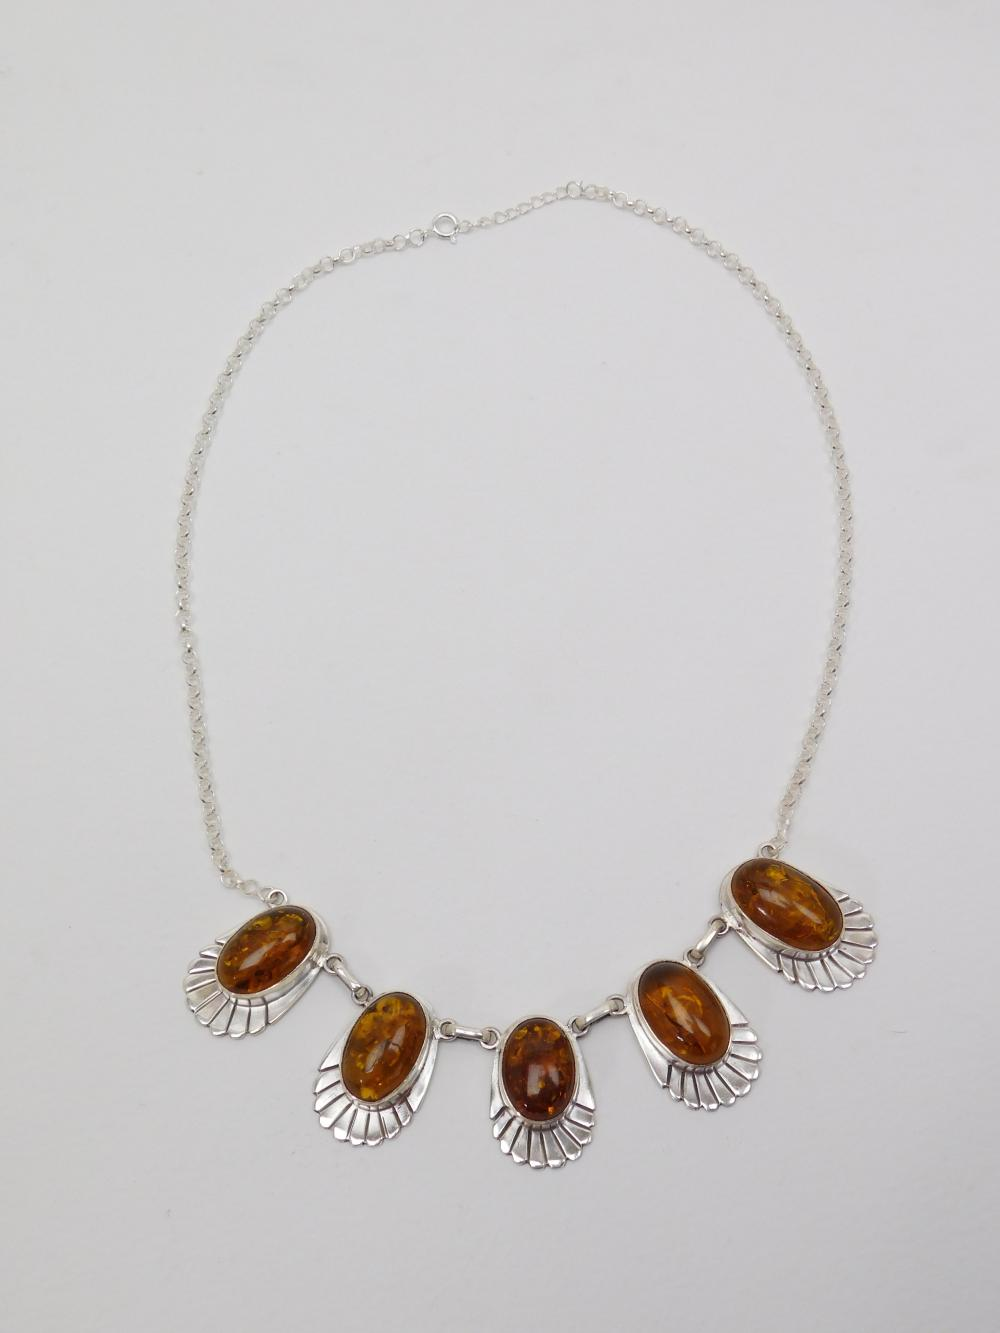 Vintage Mexico Sterling Silver Baltic Amber 5 Cabachon Handmade Necklace 42G